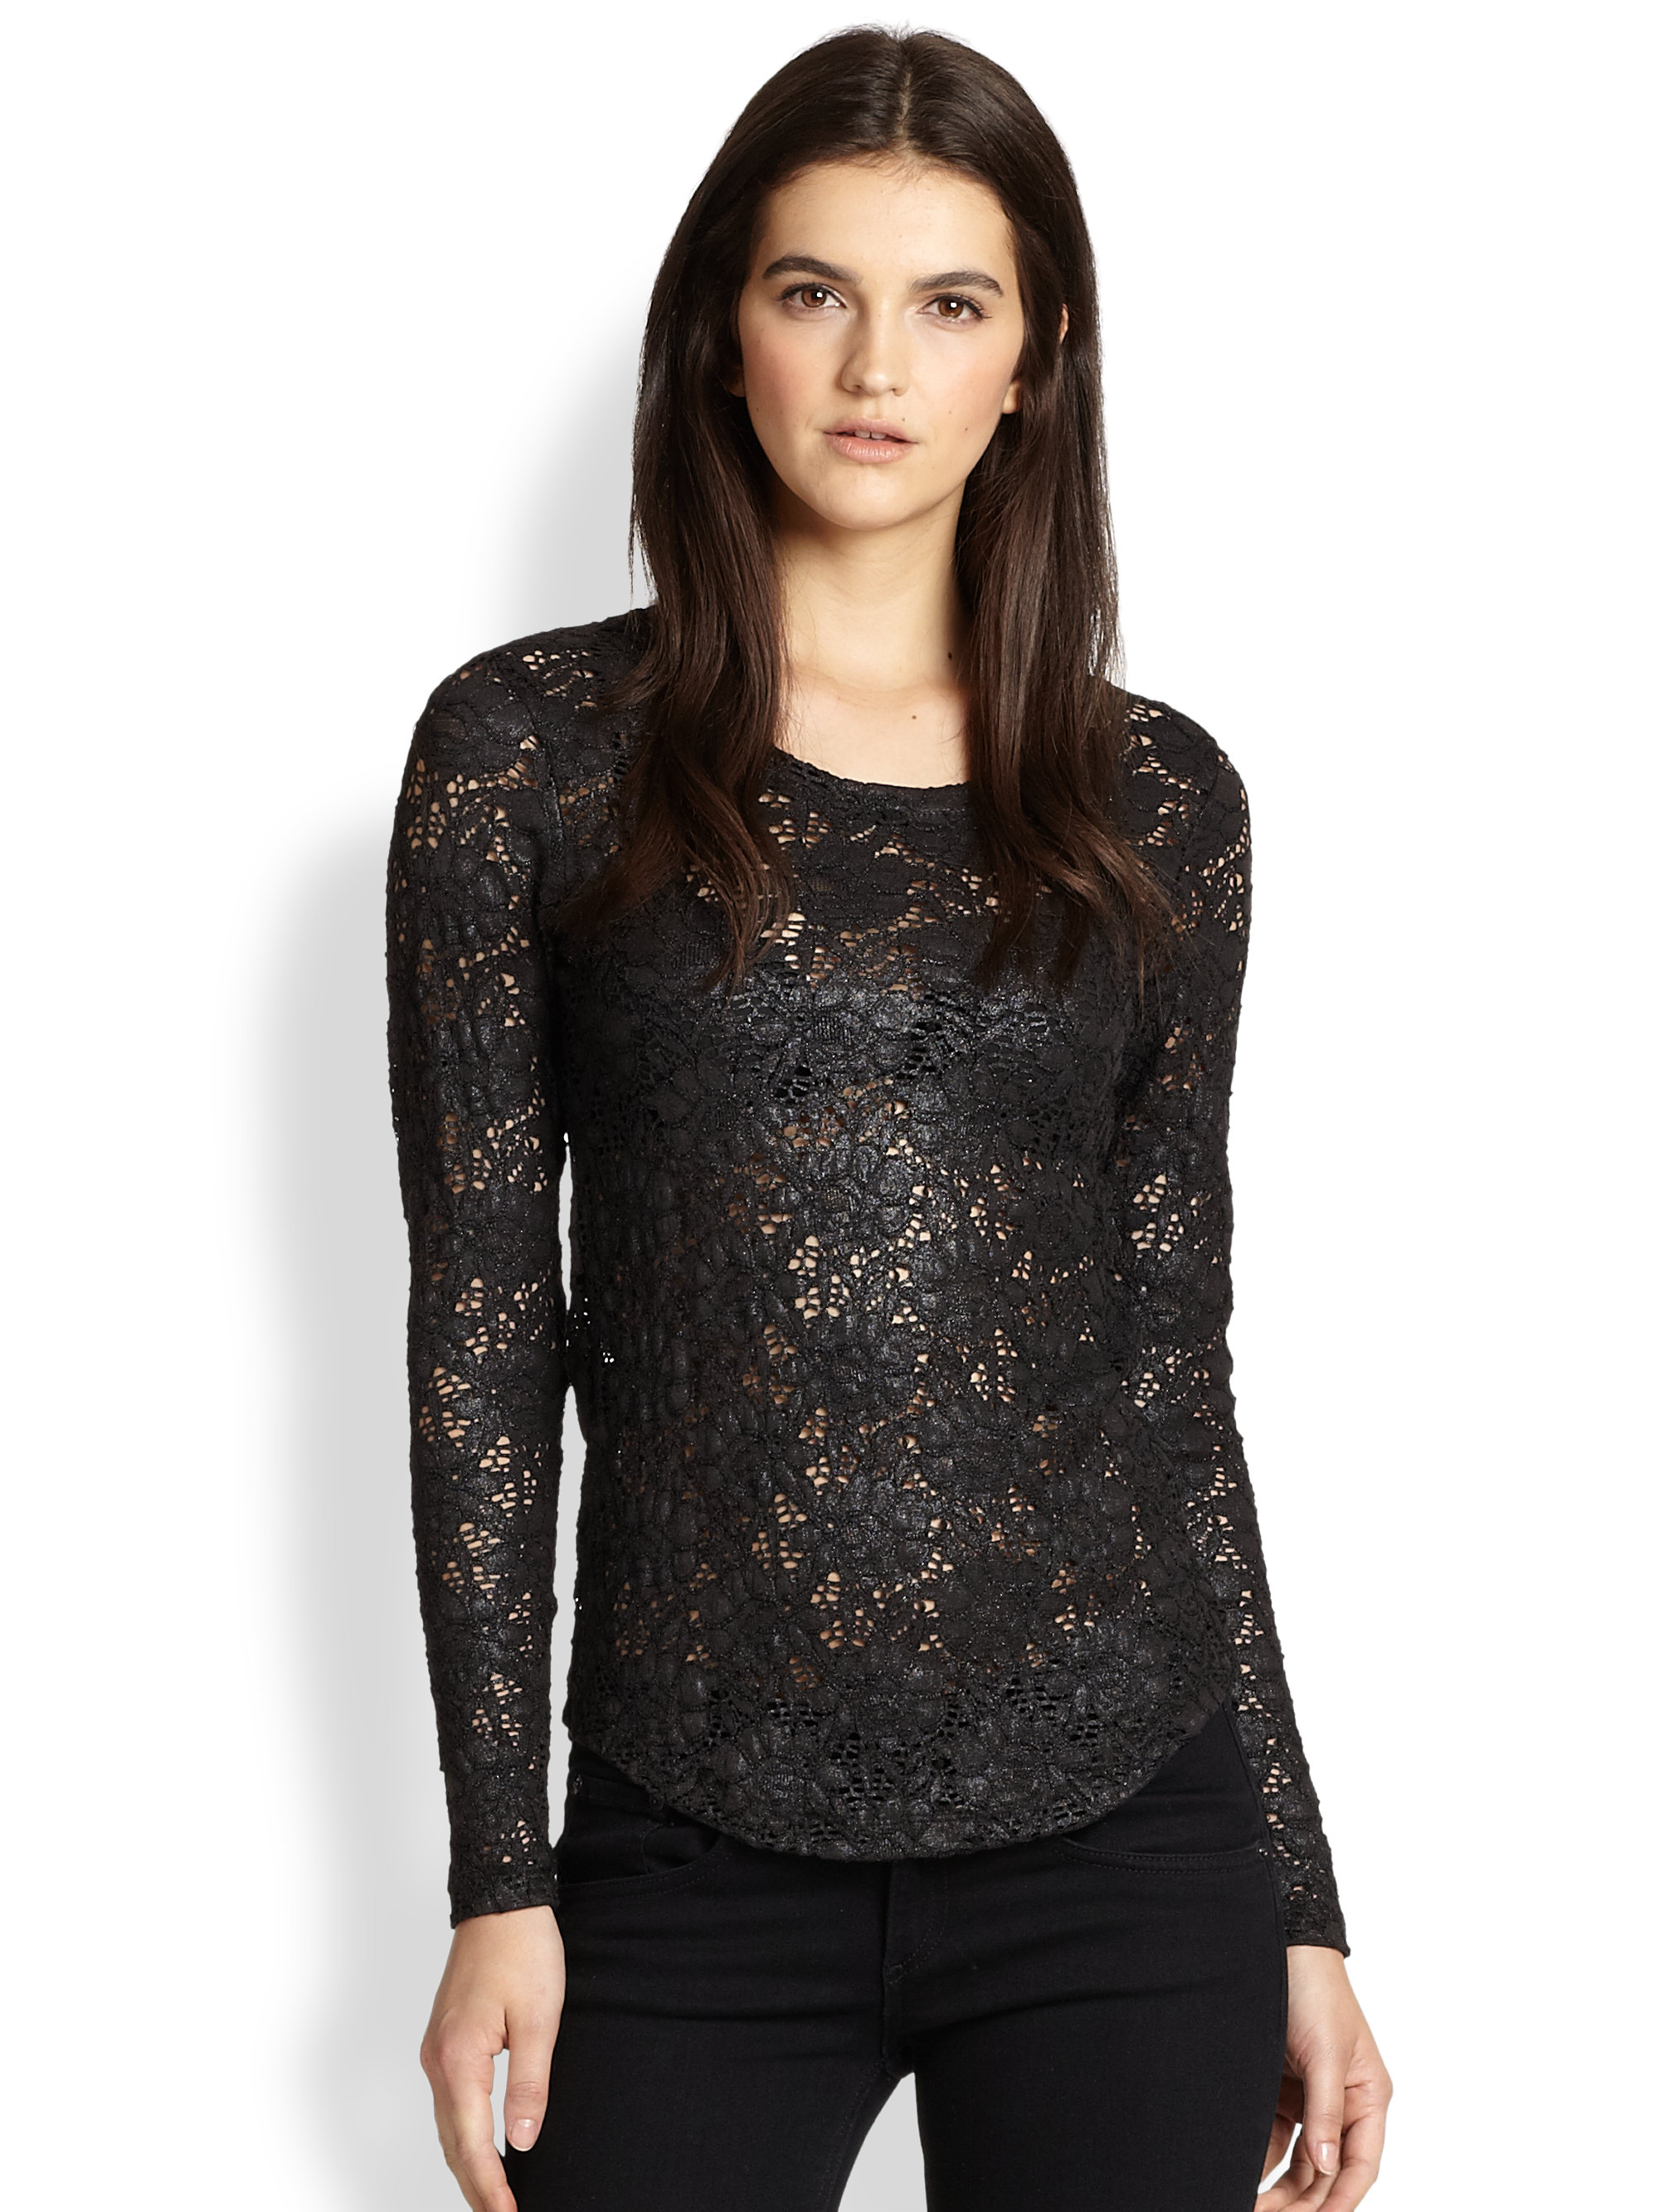 Product Description: Fashion charming long sleeve tee features lace panel collar and cuff, heap up front and simple black. - Slim fit silhouette.